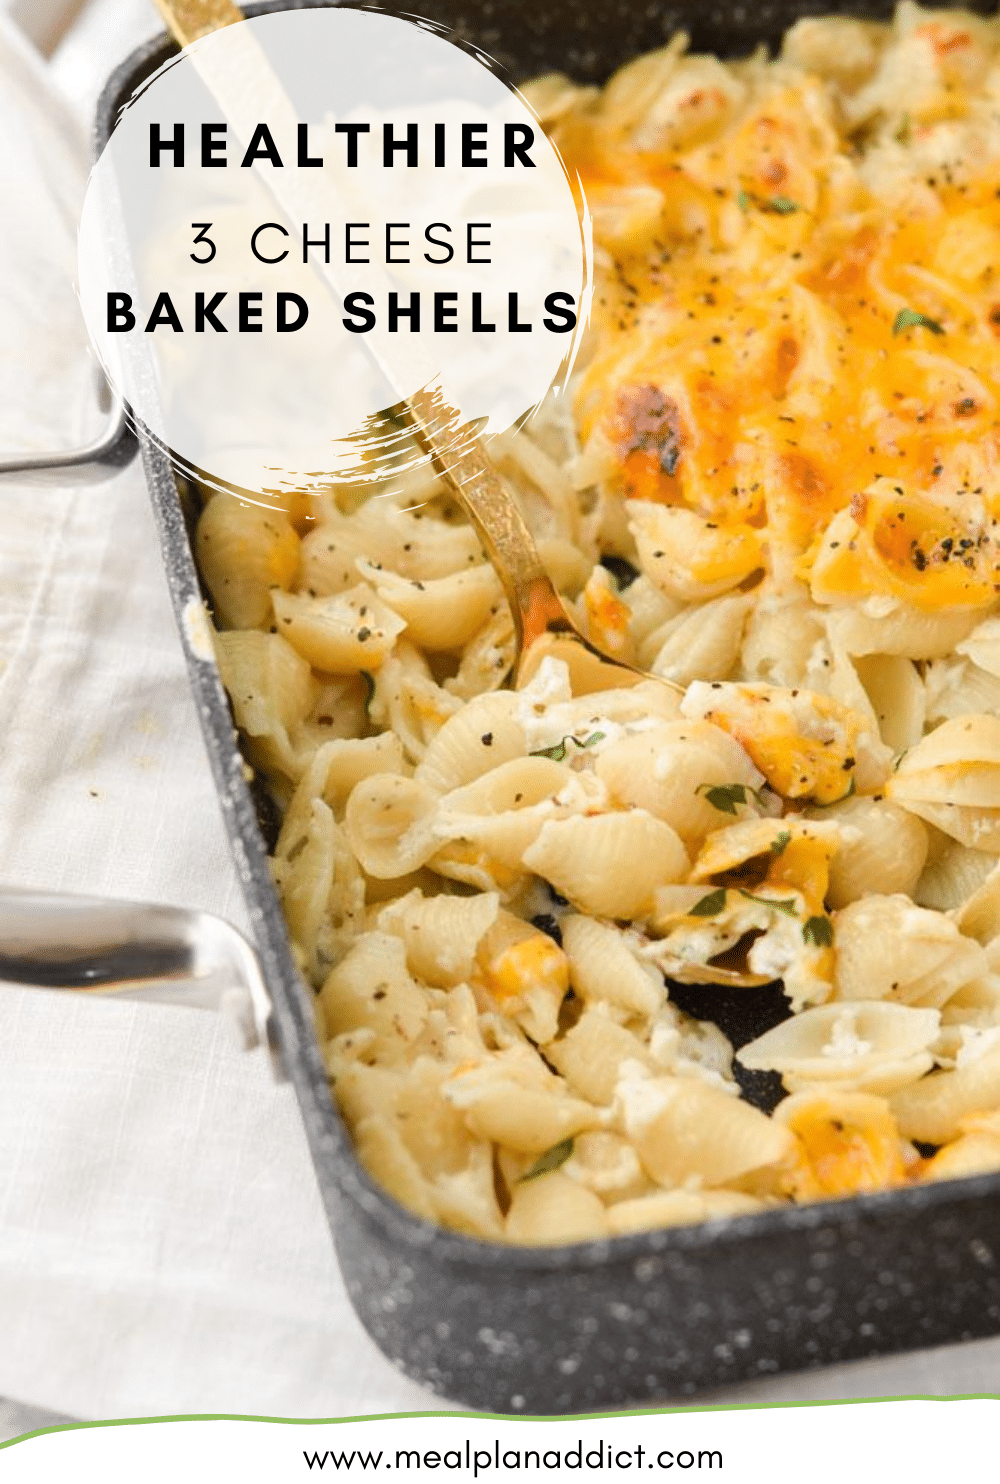 Healthier 3 Cheese Baked Shells